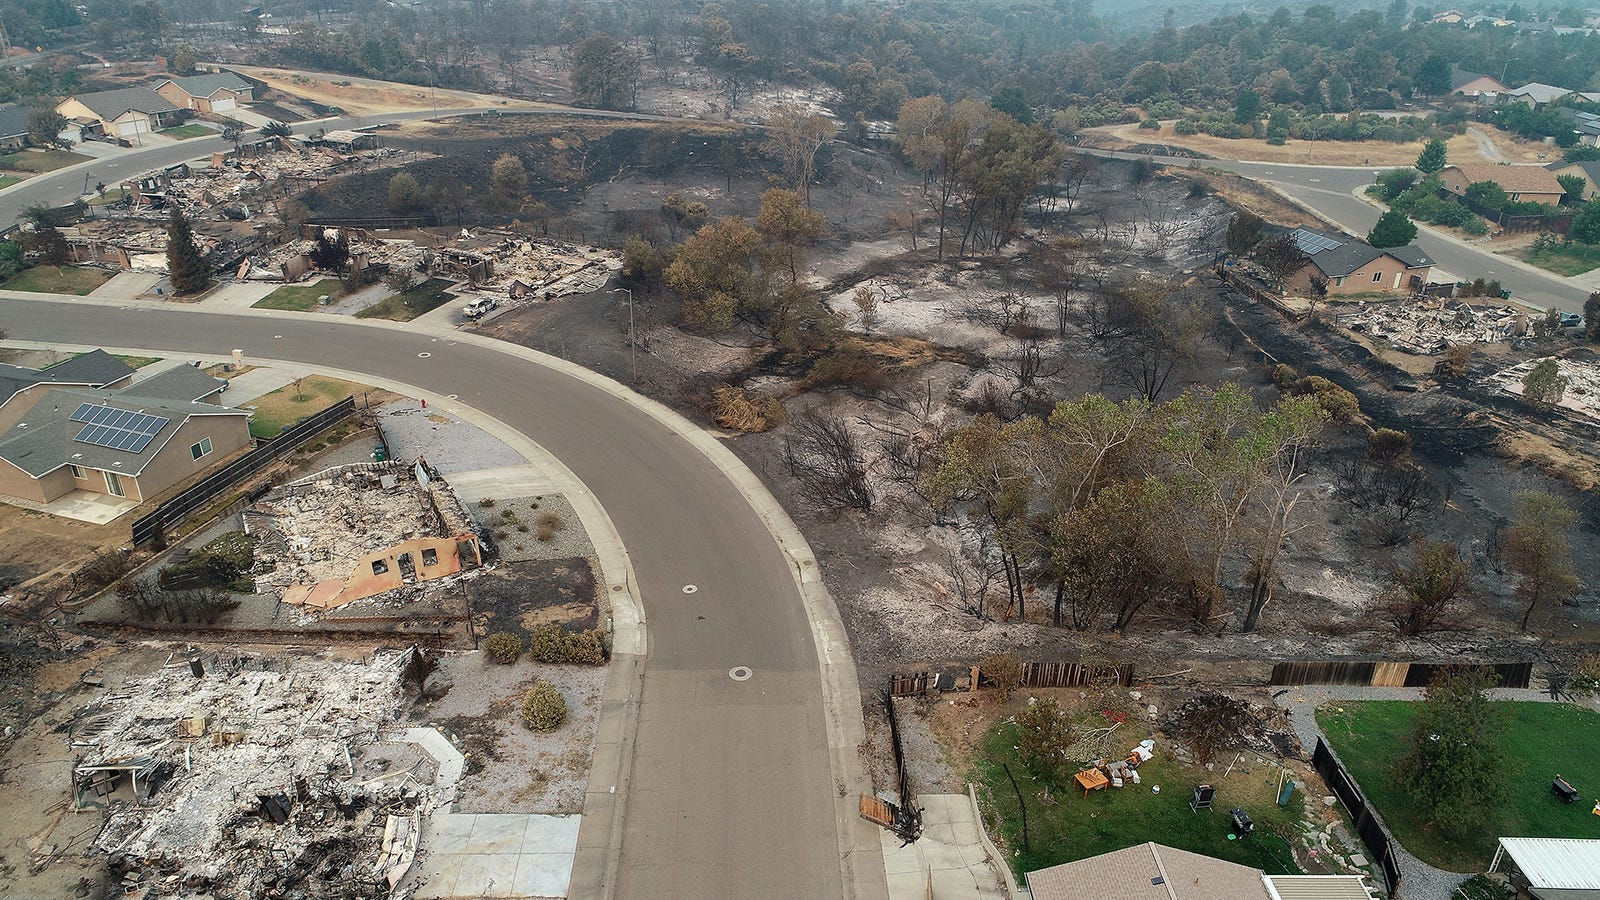 A view of the Lake Keswick Estates neighborhood on the northwest side of Redding, CA. This view Cape Cod Drive looking southwest shows the devastation from the Carr Fire as it moved through the area.